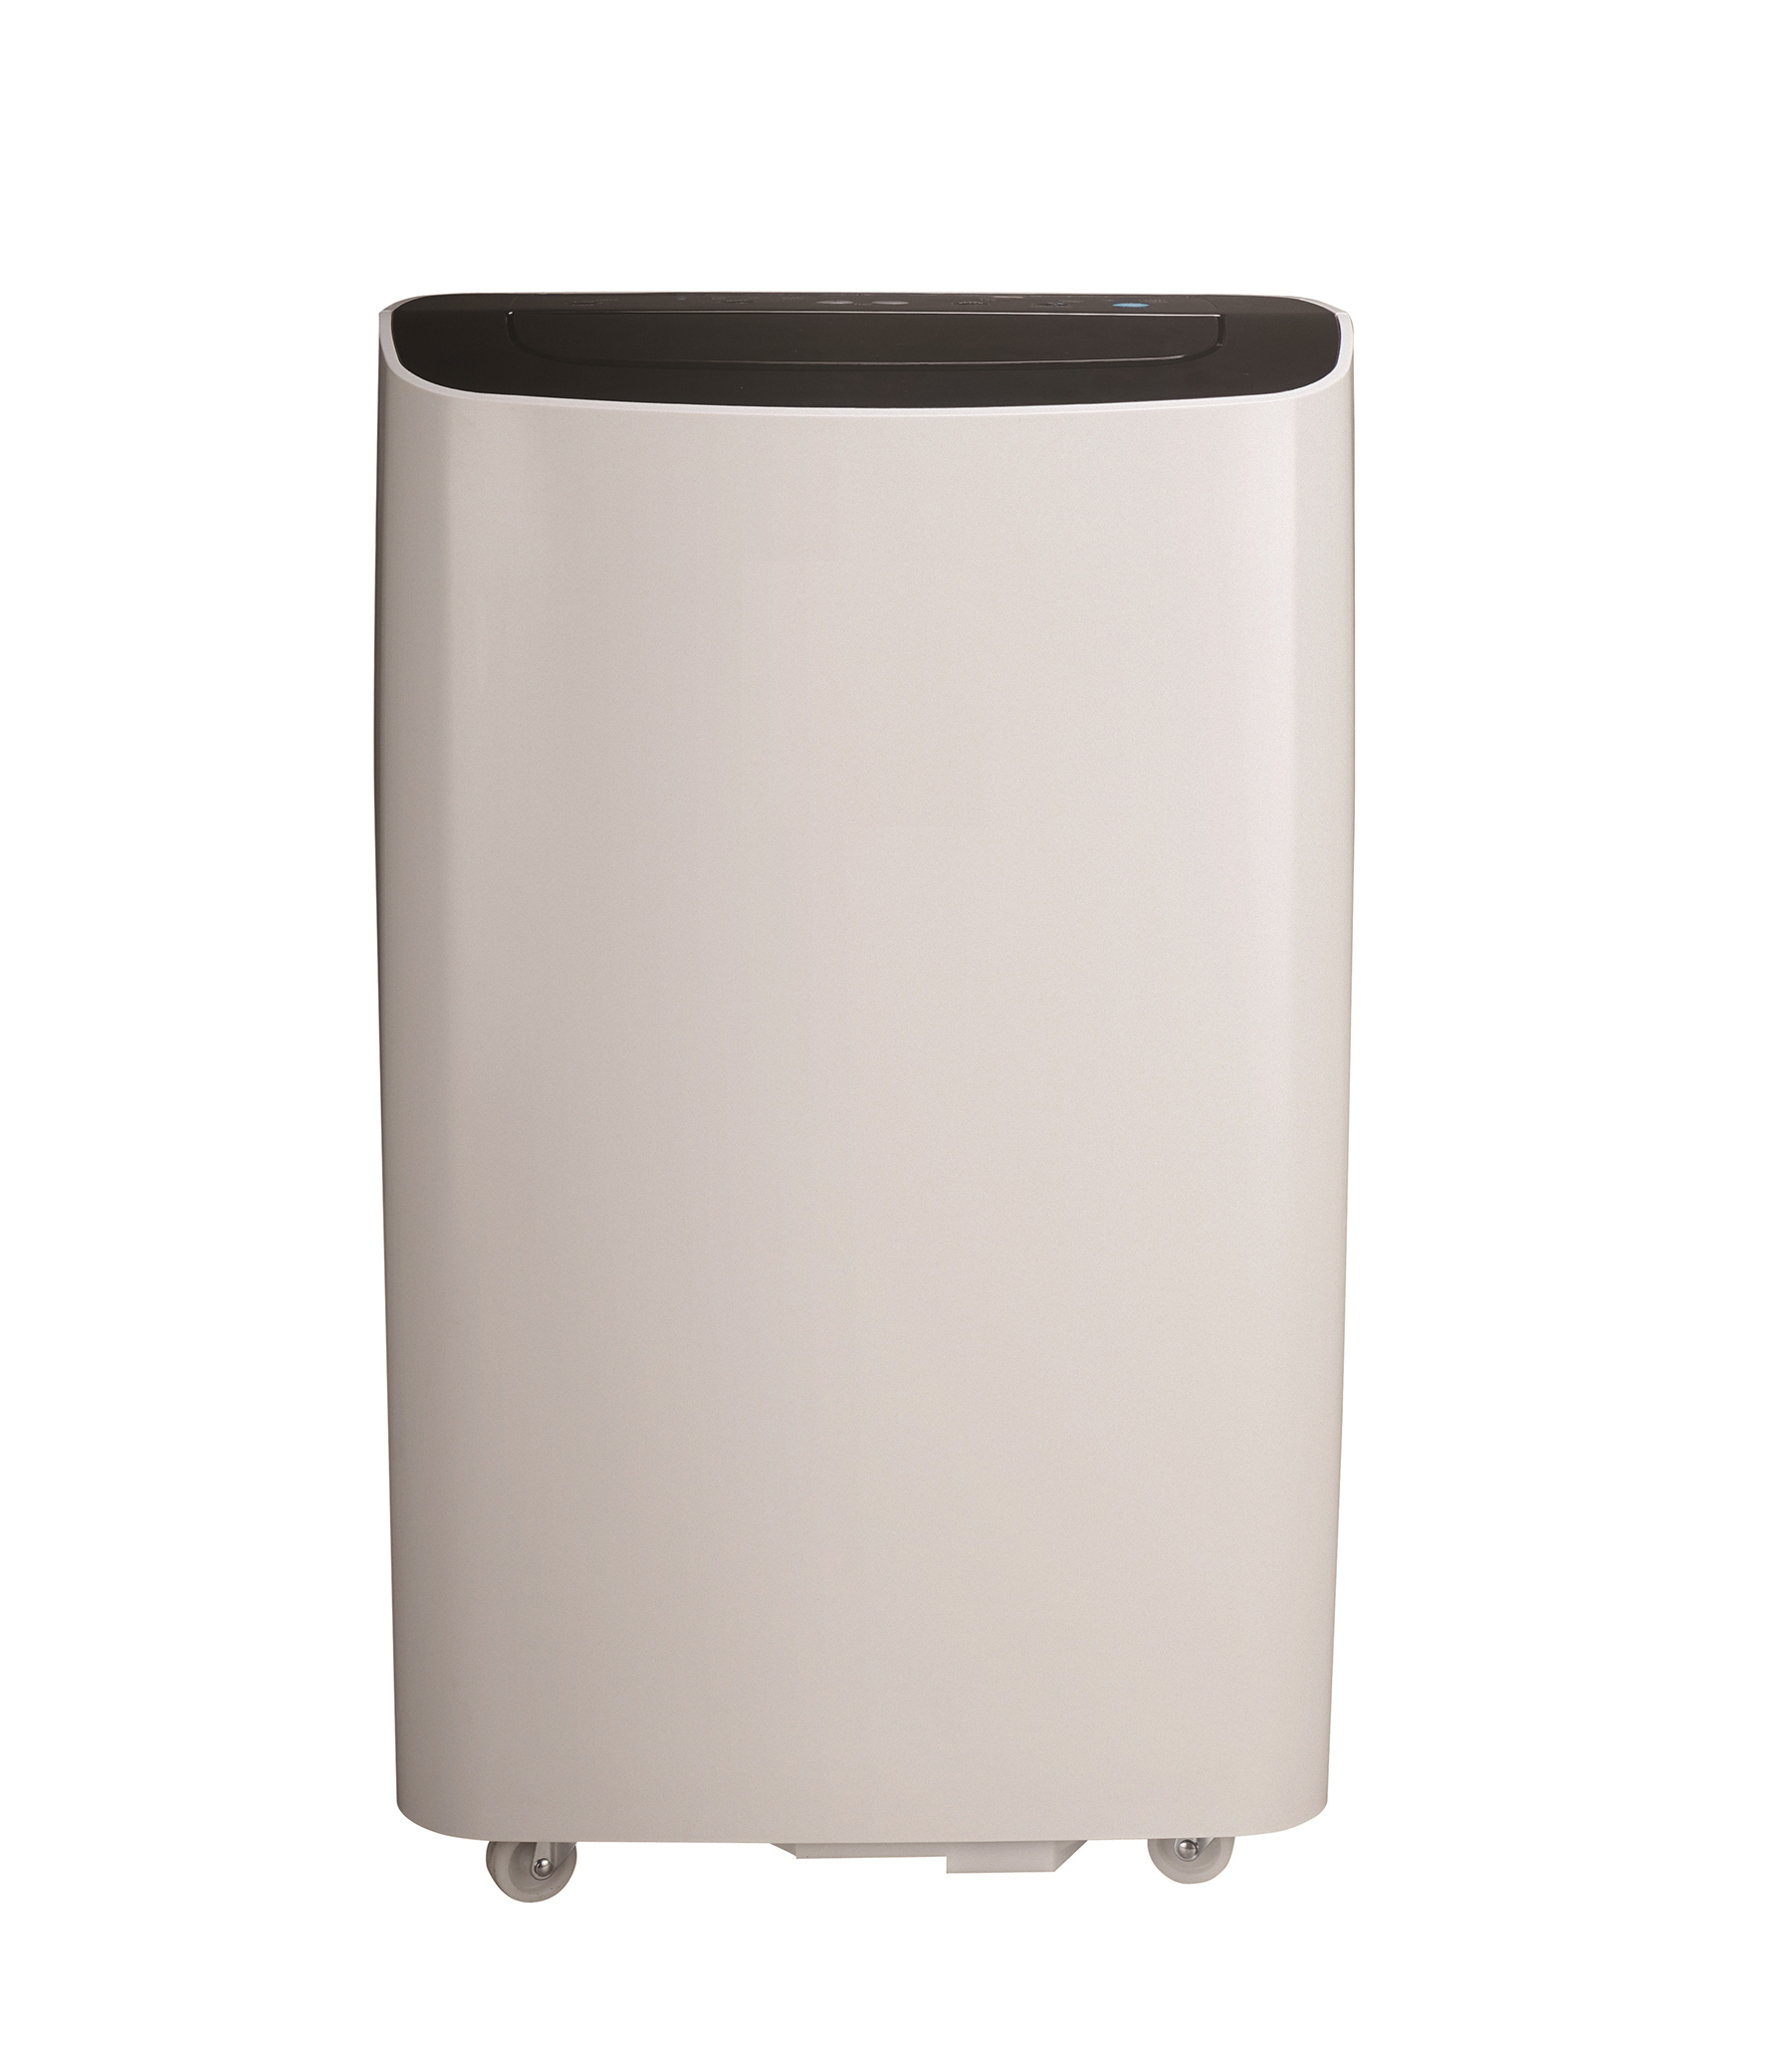 Arctic wind 10 000 btu portable air conditioner with for Small room portable air conditioners